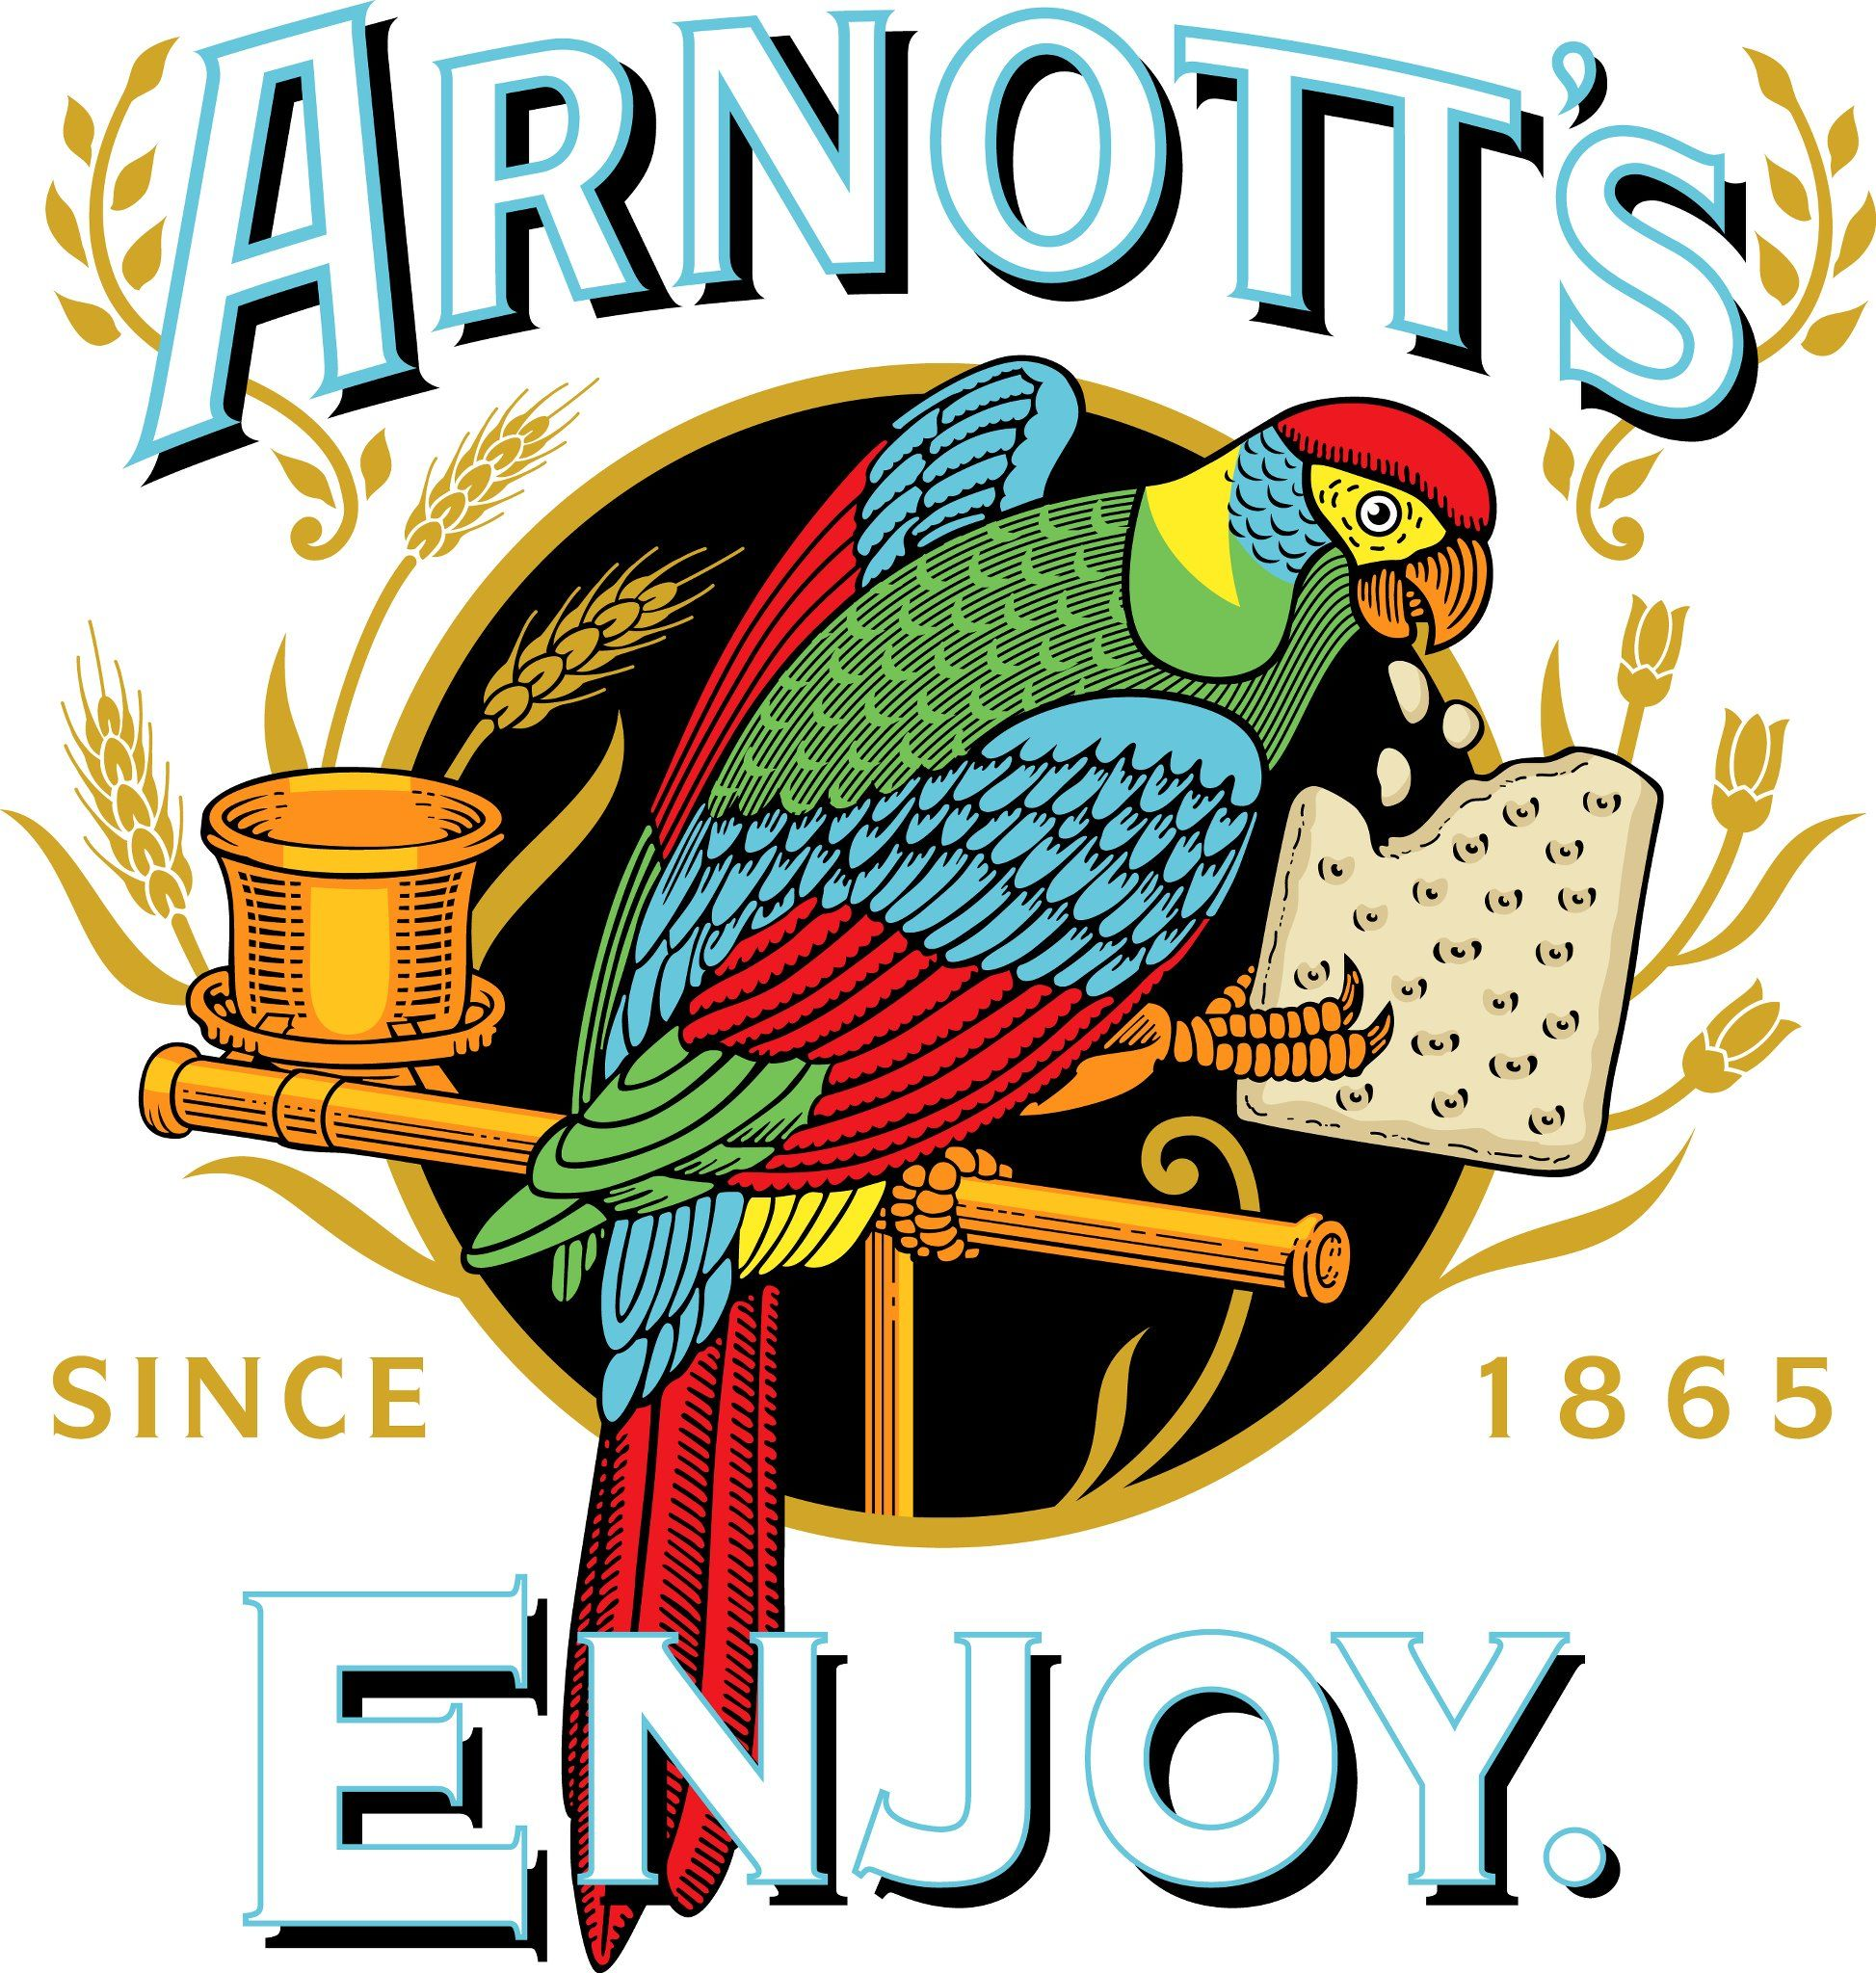 arnotts biscuits.